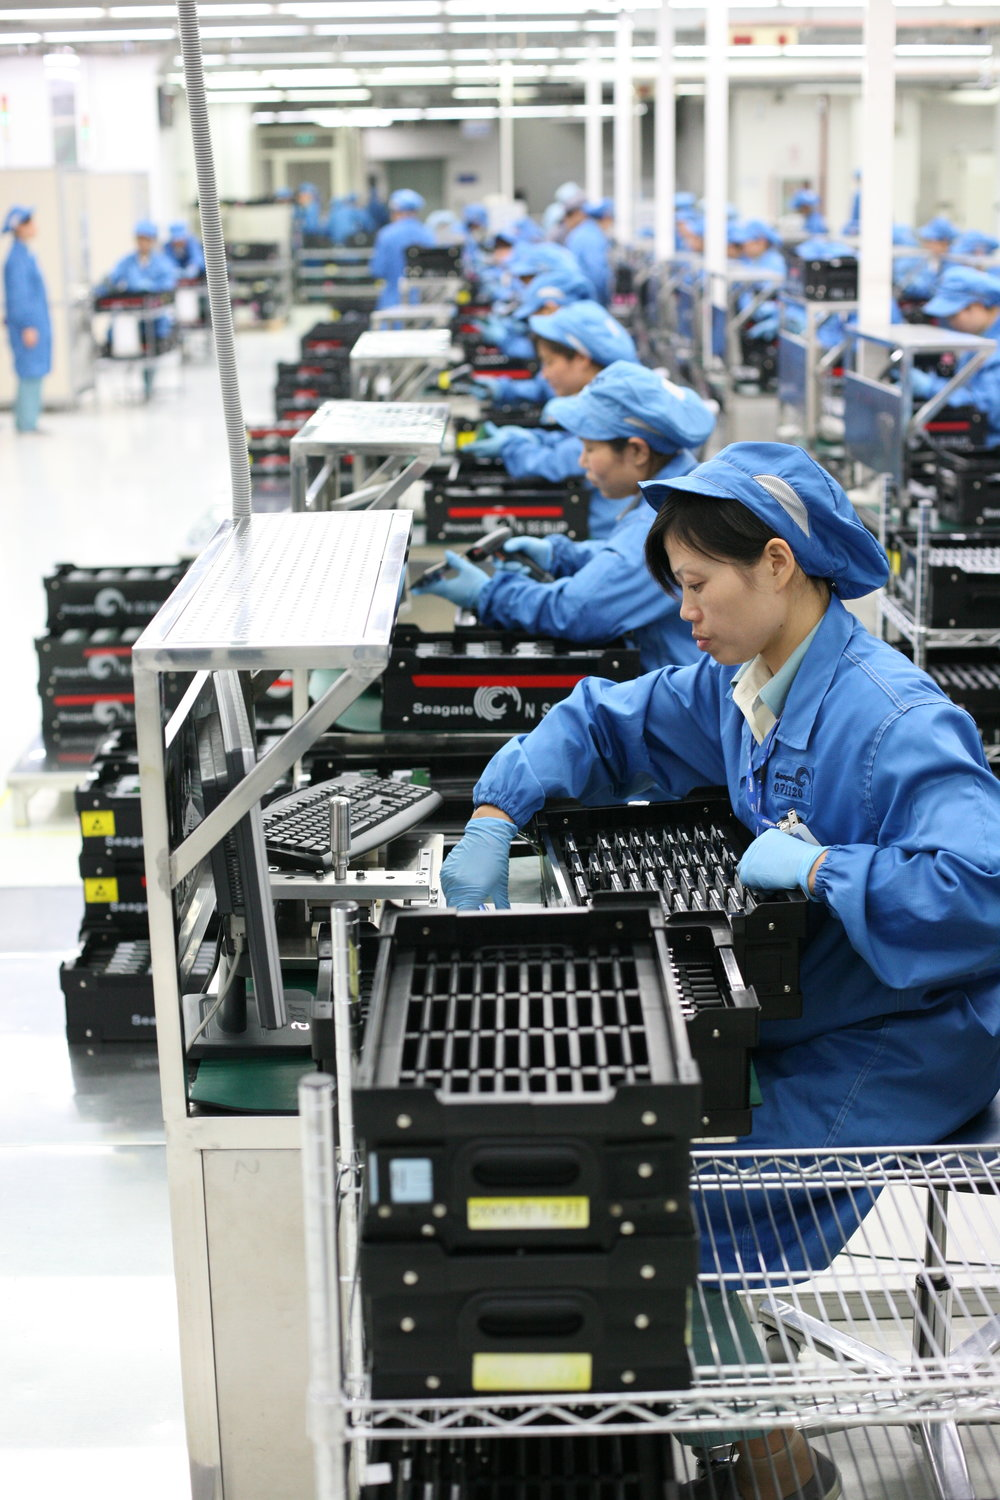 China's manufacturing prowess is a major component of many industries' supply chains.